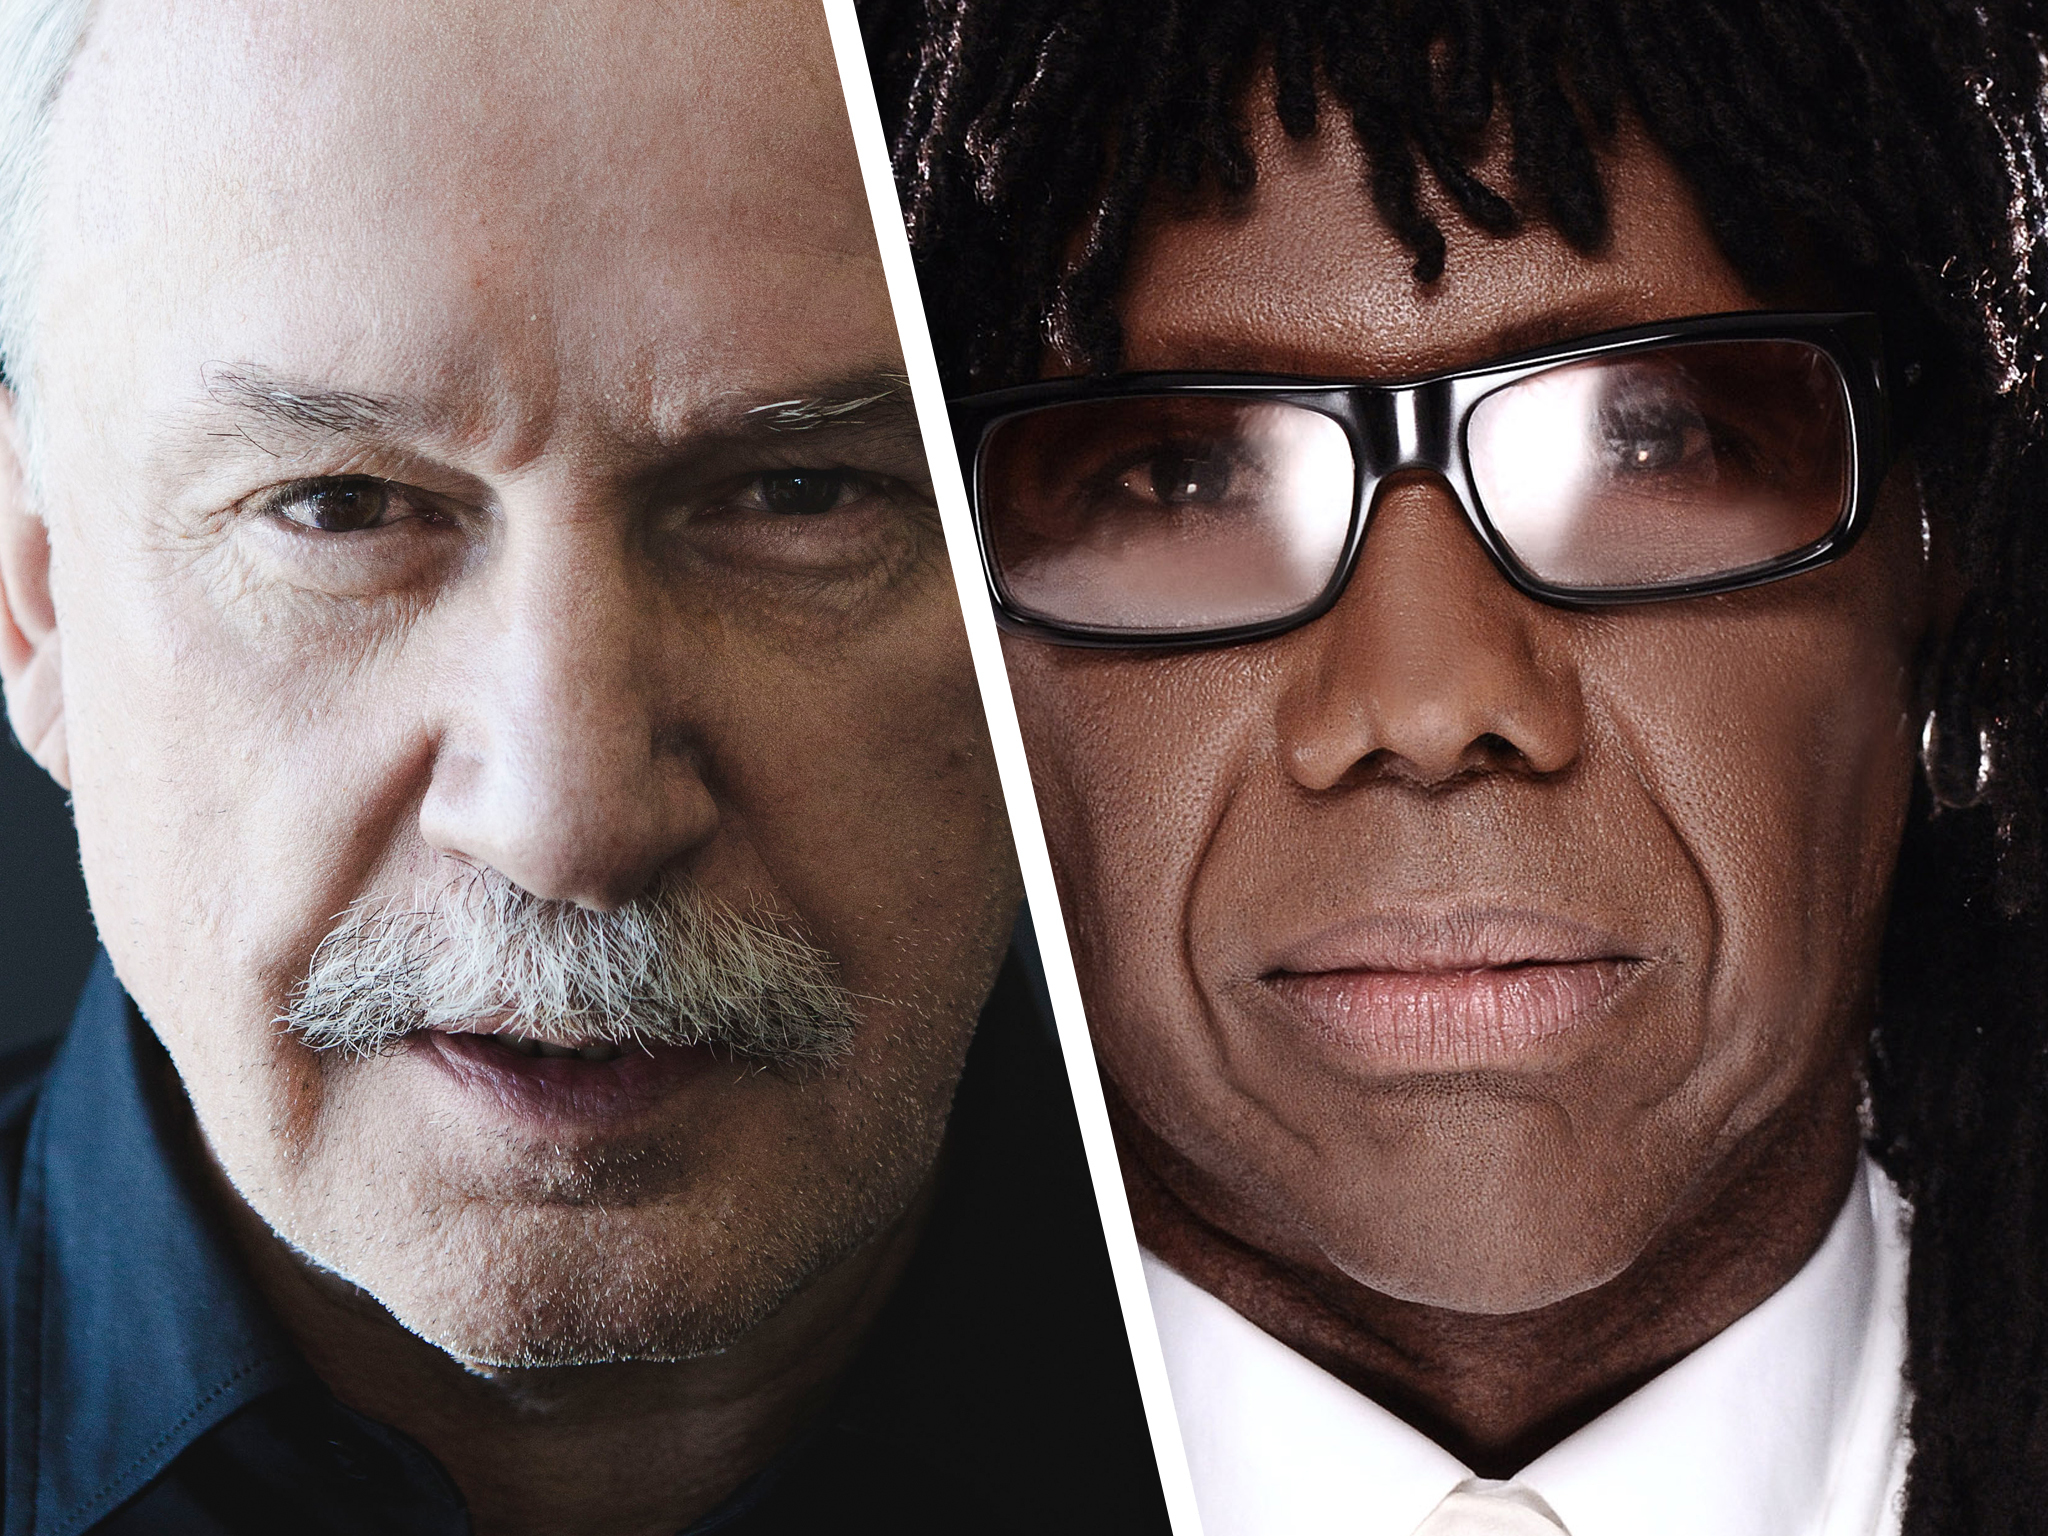 Giorgio Moroder and Nile Rodgers: Time Out meets the hit makers